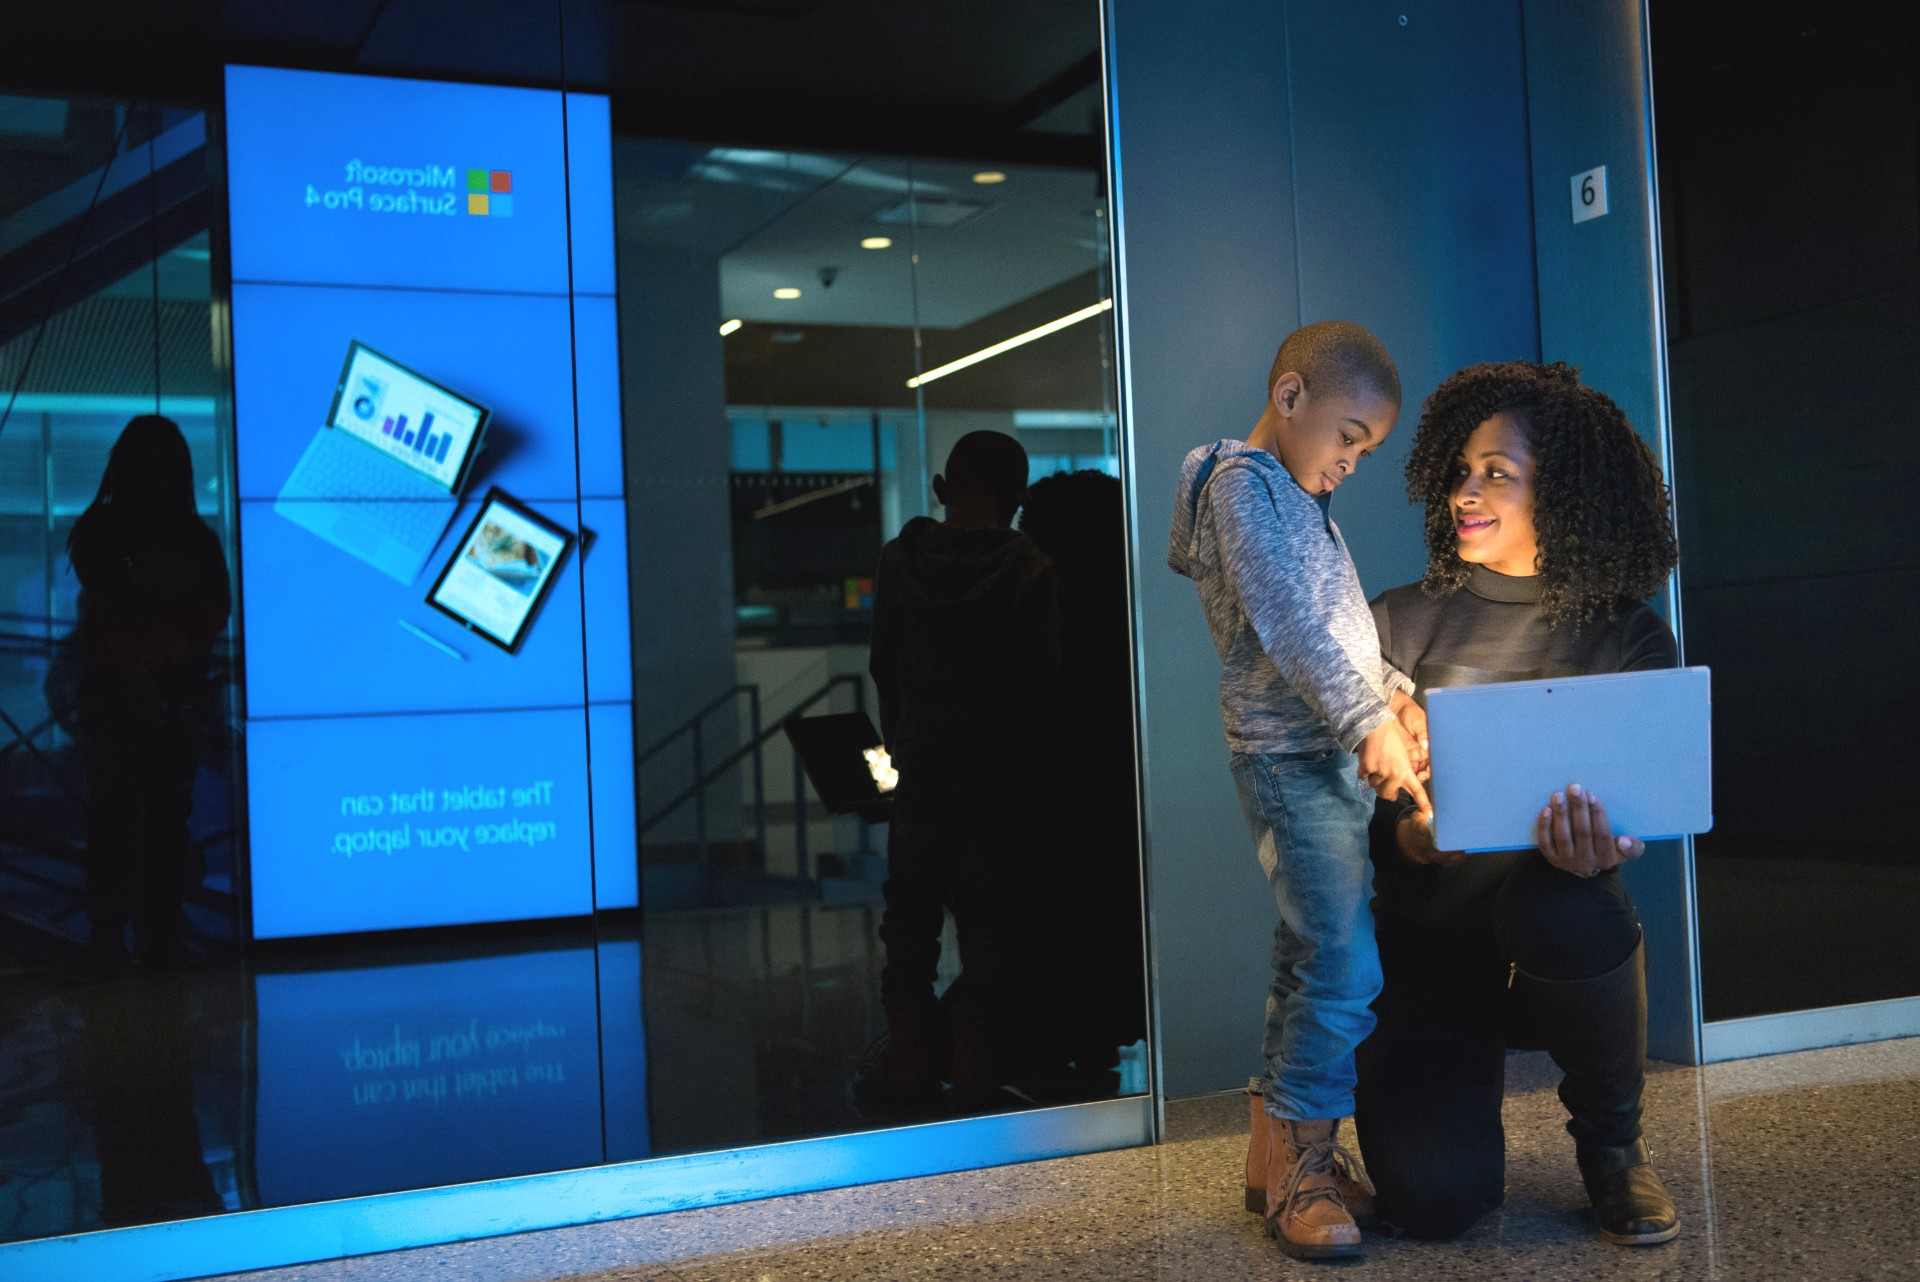 A woman and child looking at a laptop